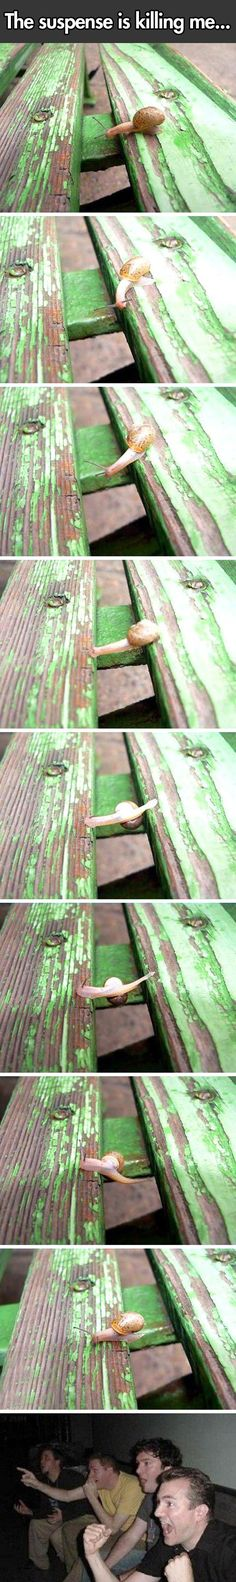 Parkour snail // funny pictures - funny photos - funny images - funny pics - funny quotes - #lol #humor #funnypictures Snails, Anim, Parkour, Funny Pictures, Funni, Funny Images, Funny Quotes, Humor, Thing